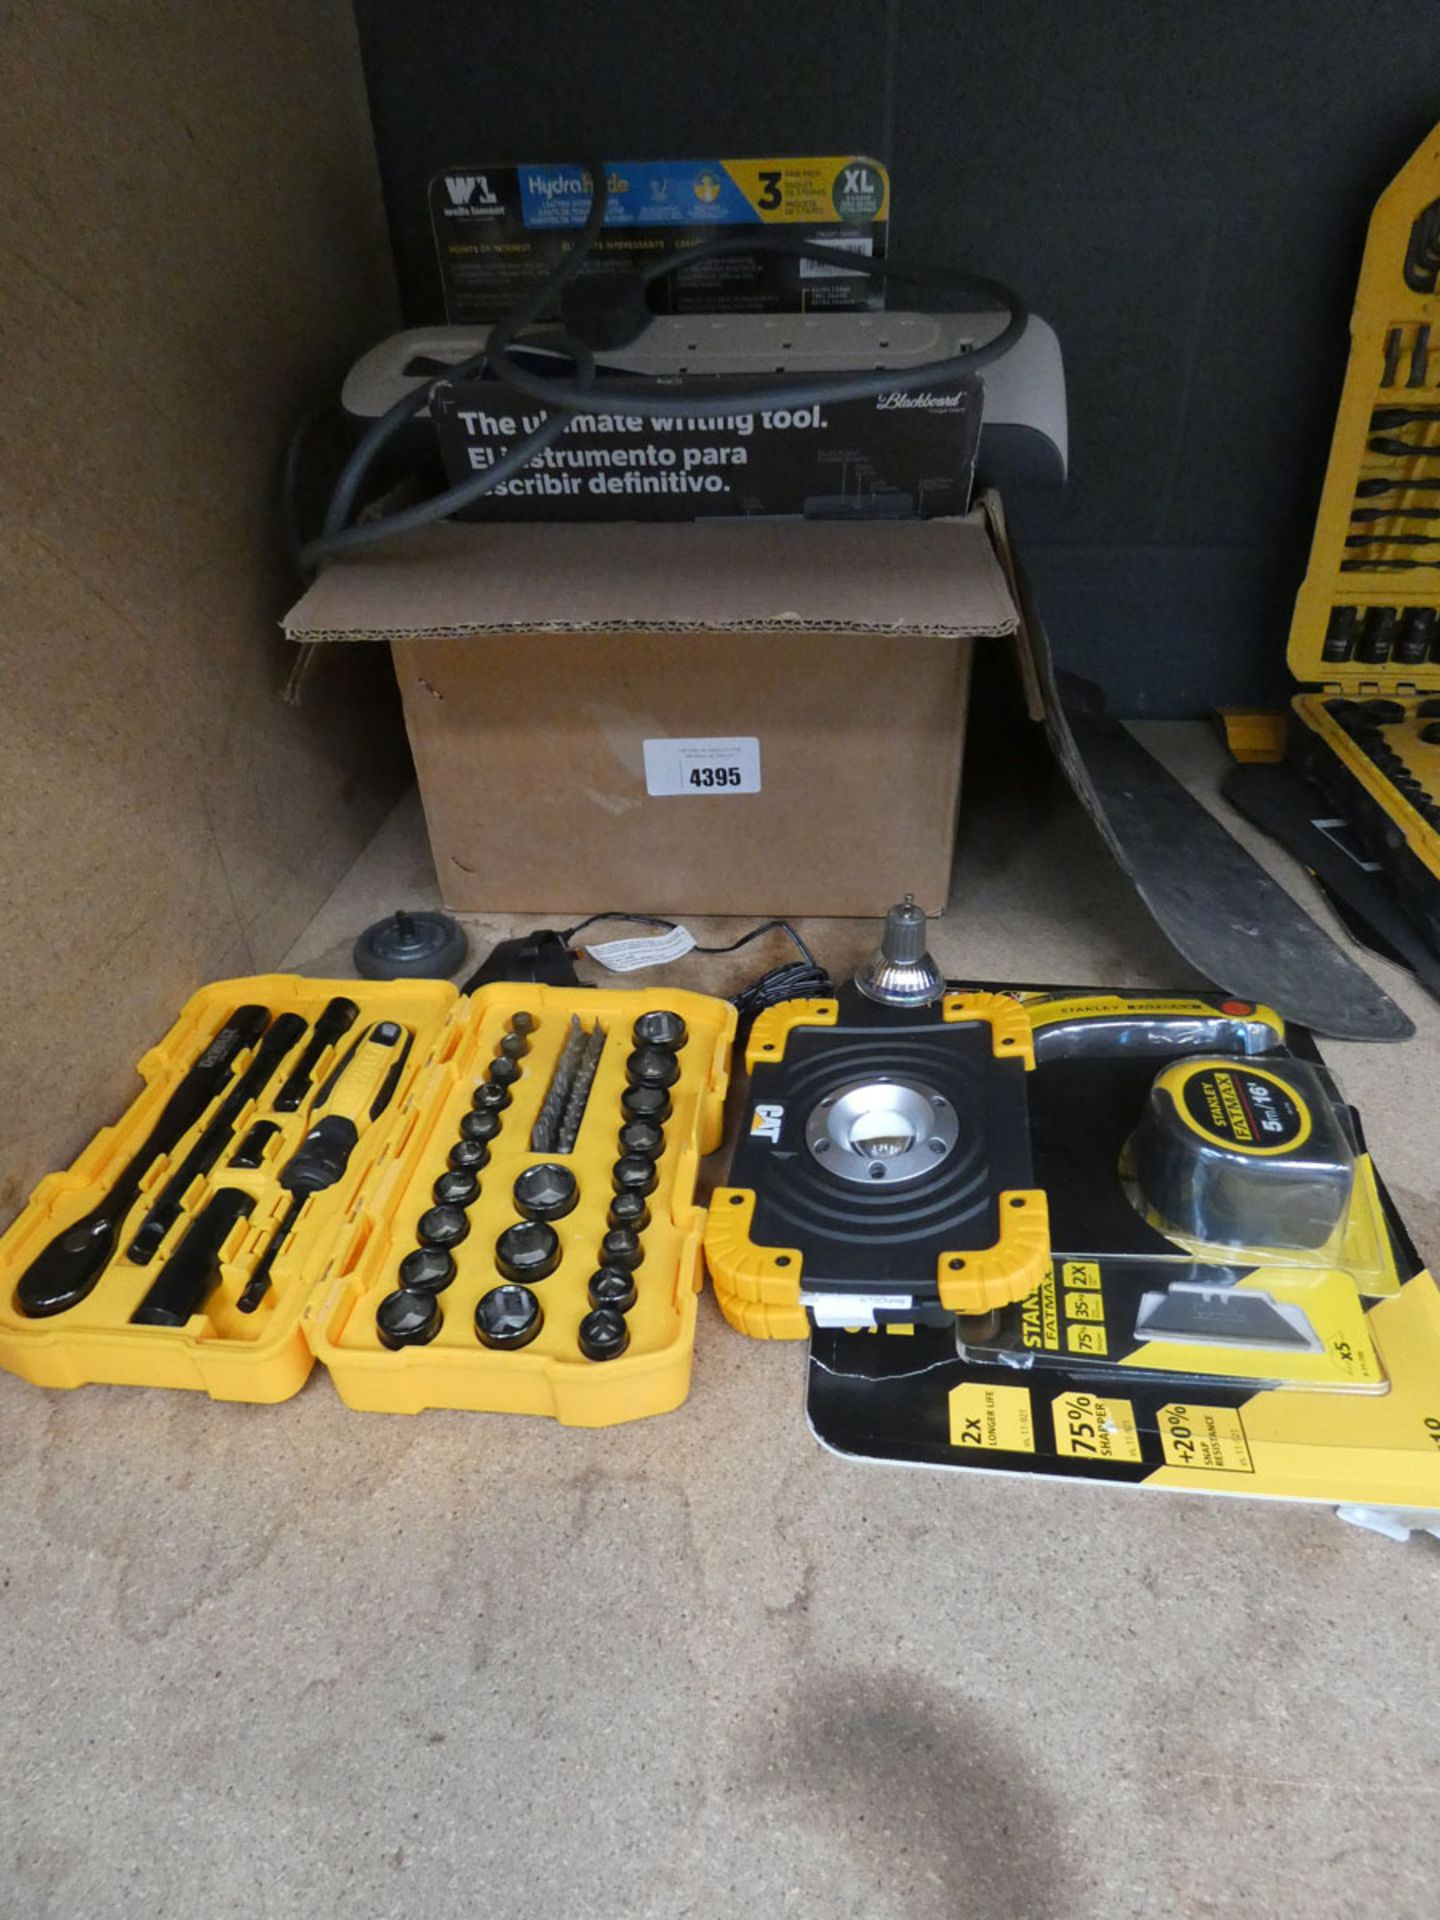 Box containing work gloves, extension cable, small DeWalt socket set, Stanley FatMax tape measure